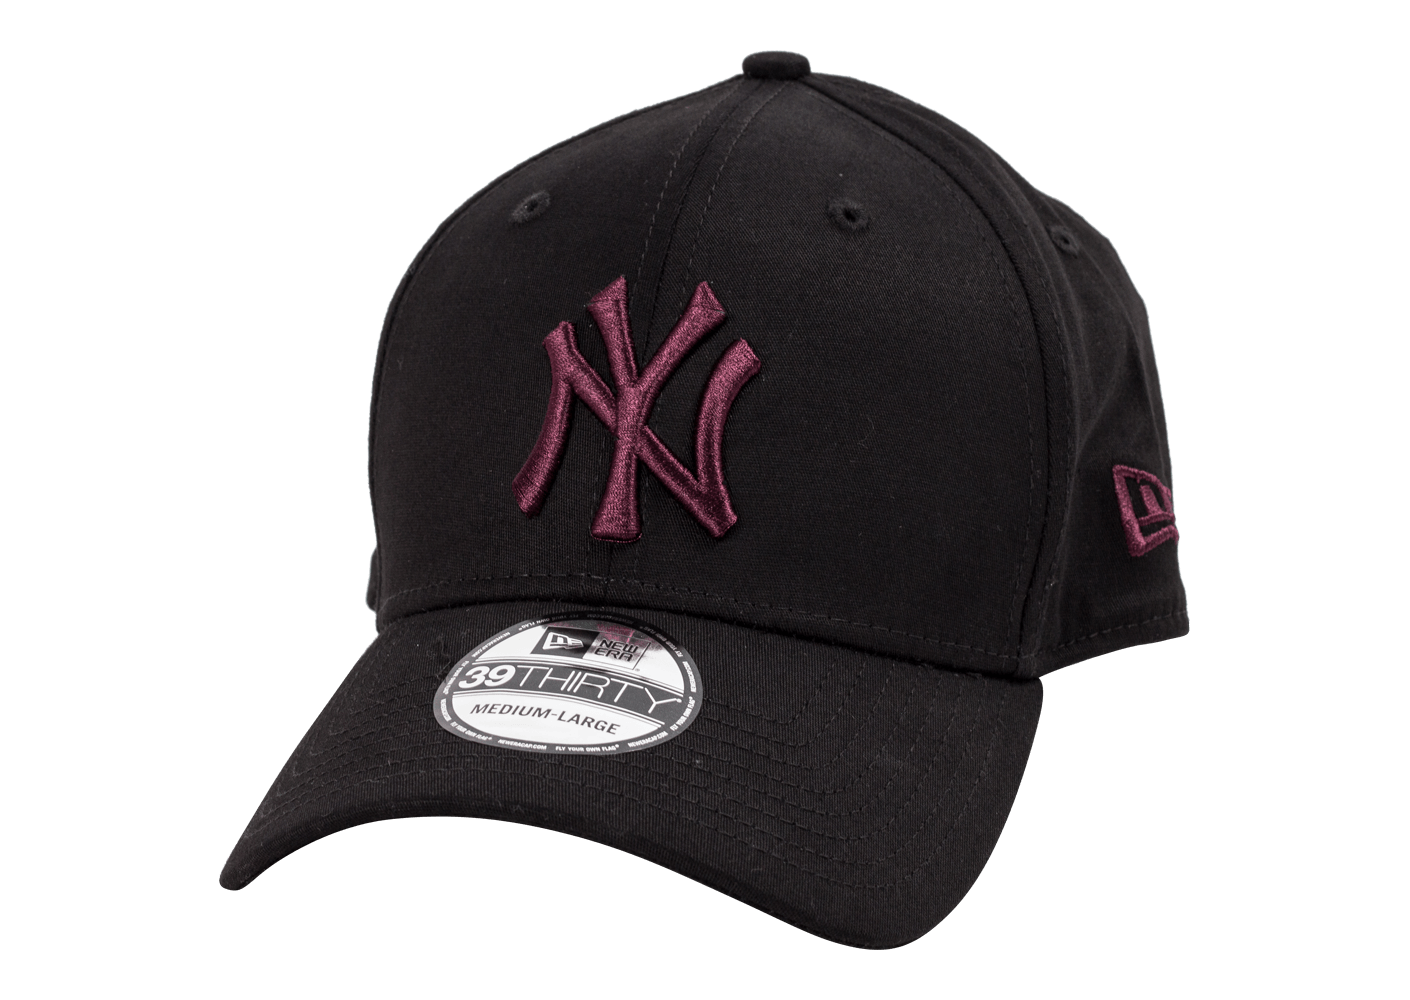 casquette femme new era noire casquette new era mlb flawless noir homme casquette new era mlb flawle. Black Bedroom Furniture Sets. Home Design Ideas